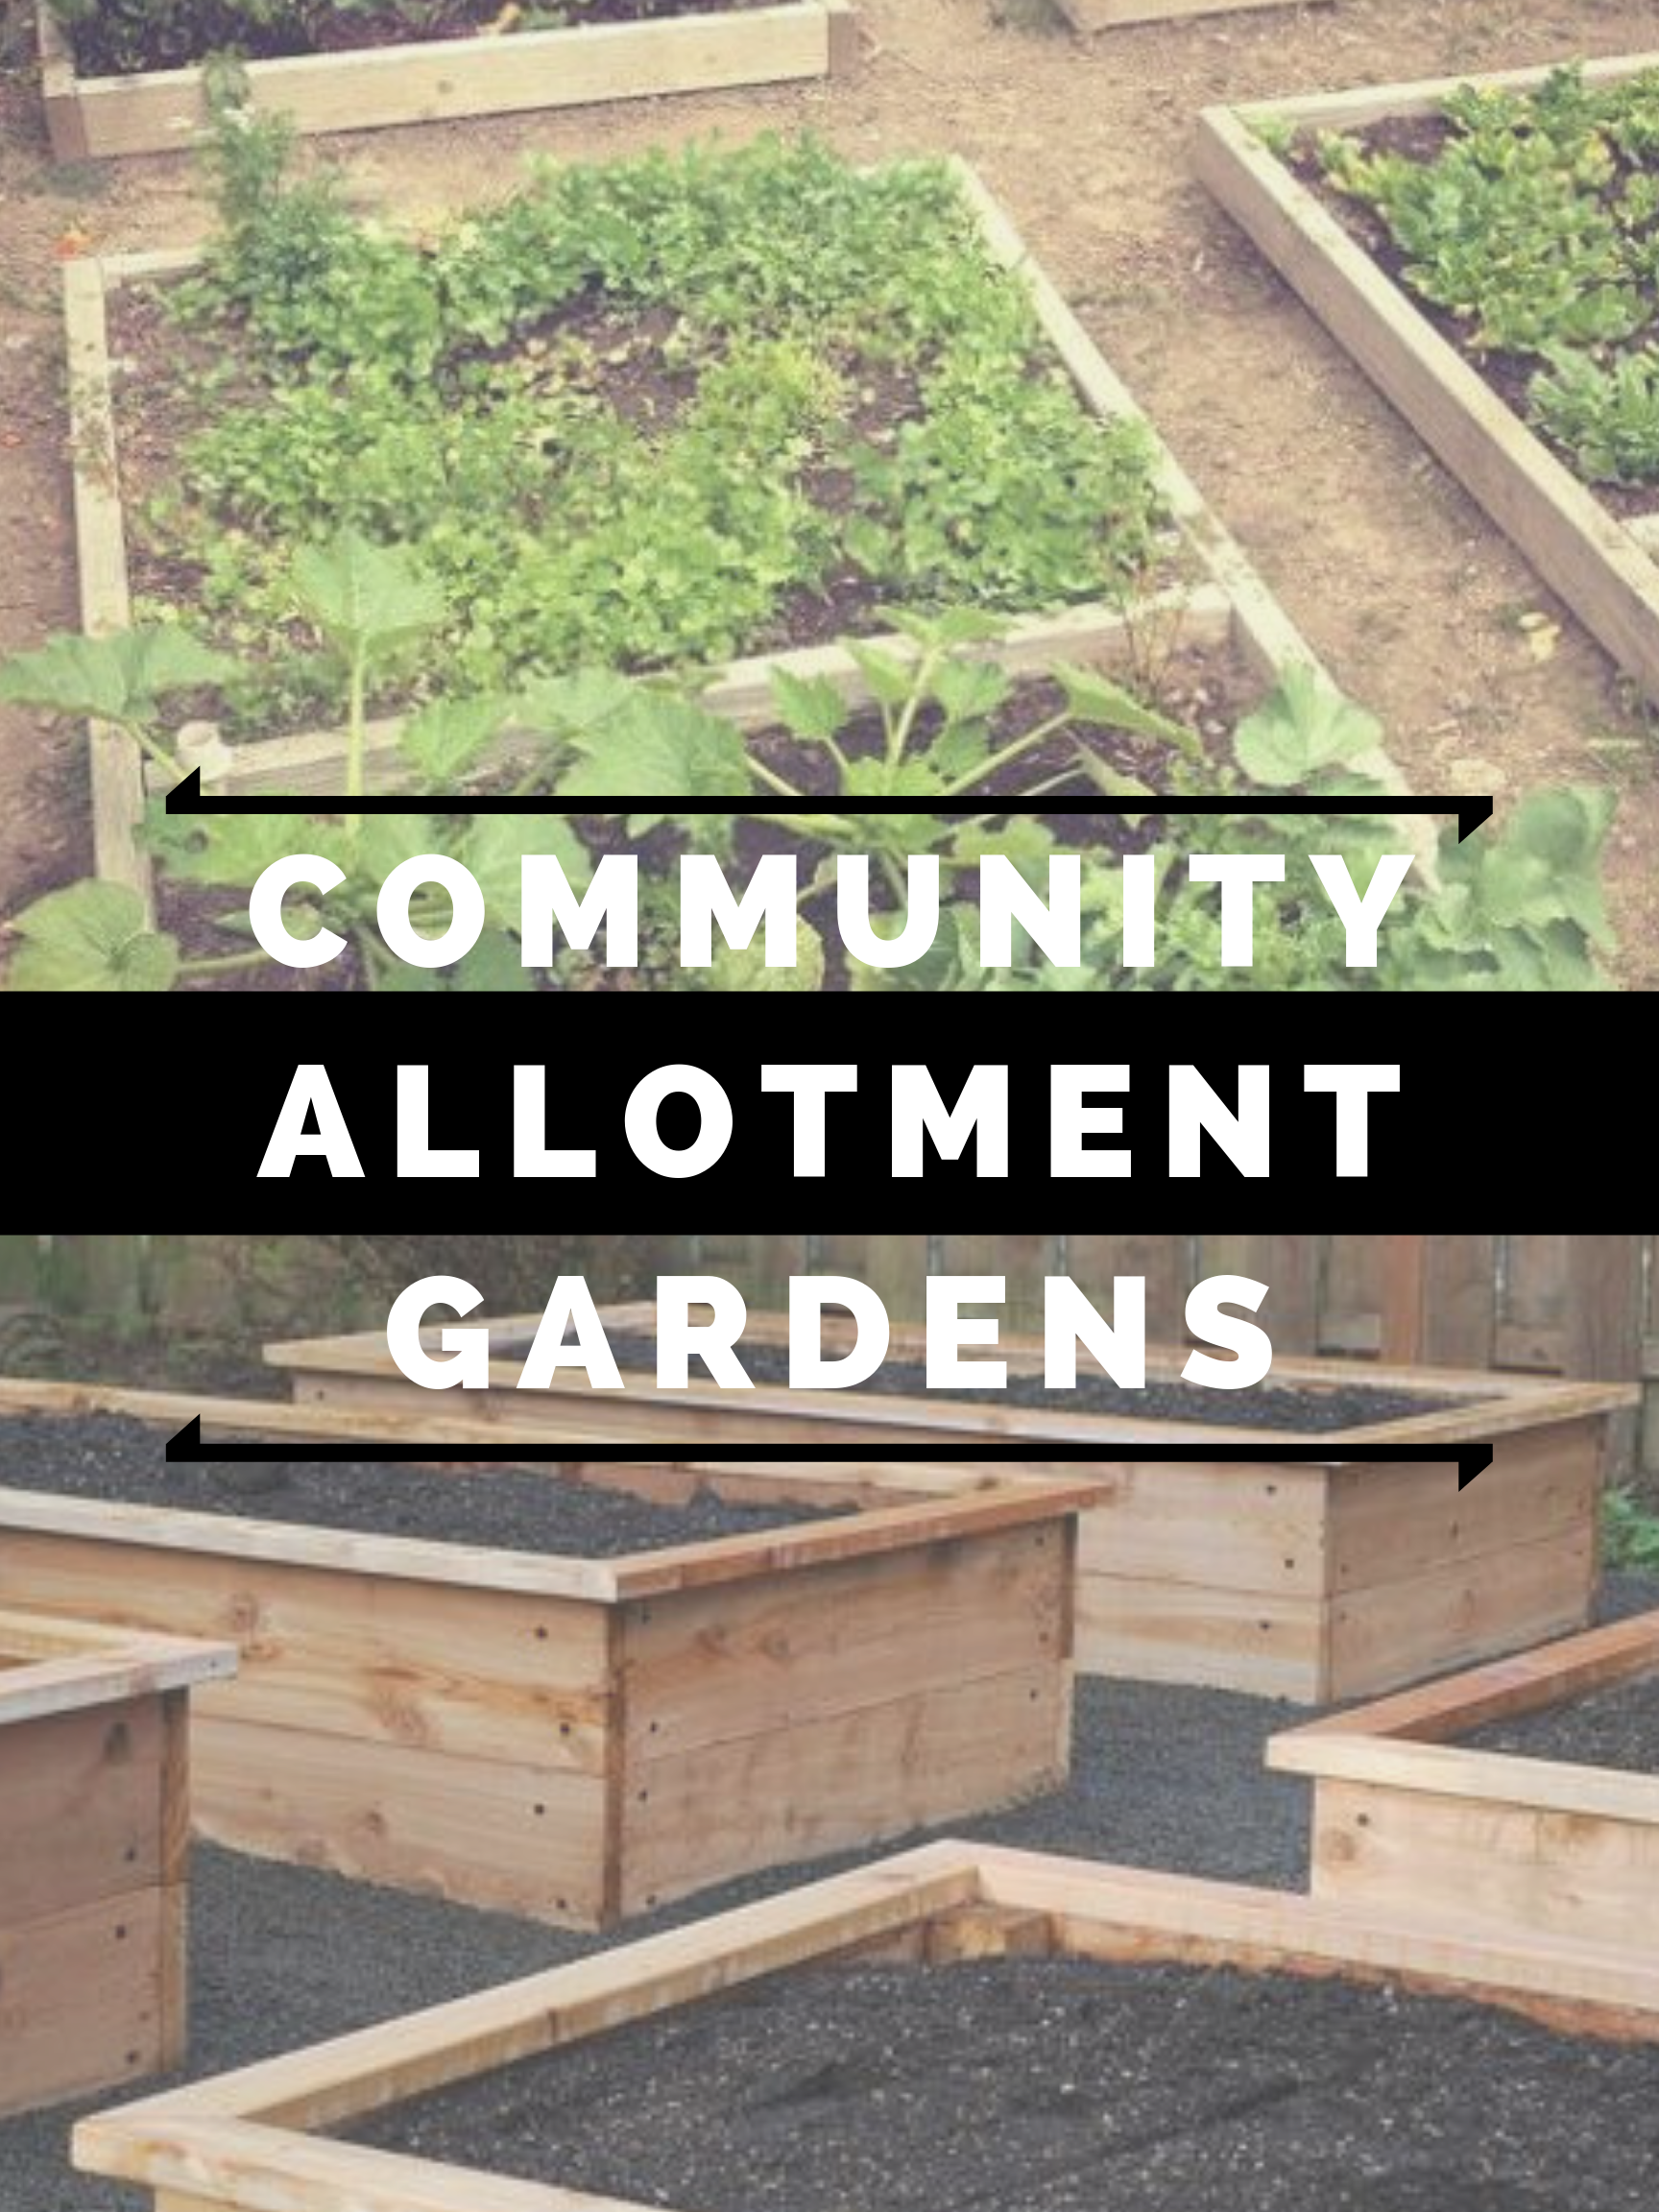 Community Allotment Gardens